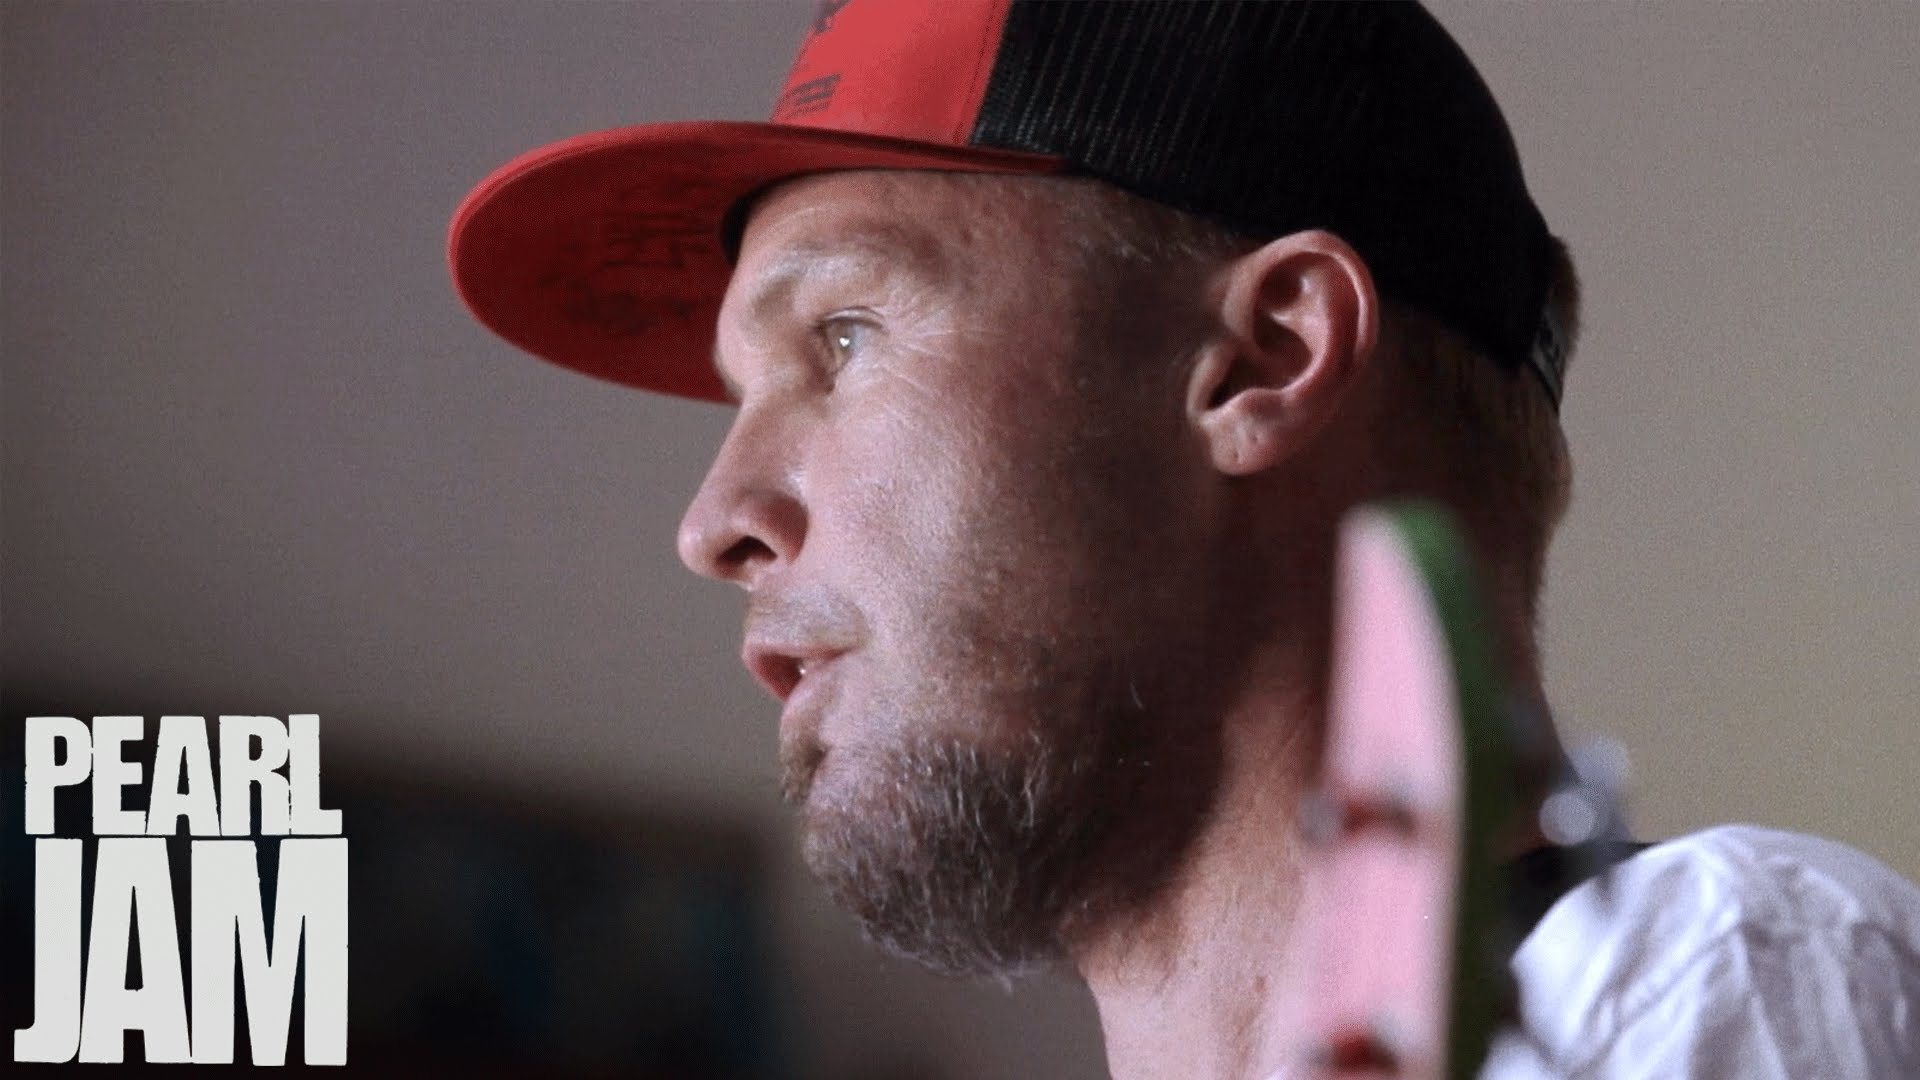 Pearl Jam's Jeff Ament launches solo career with an assist from Angel Olsen